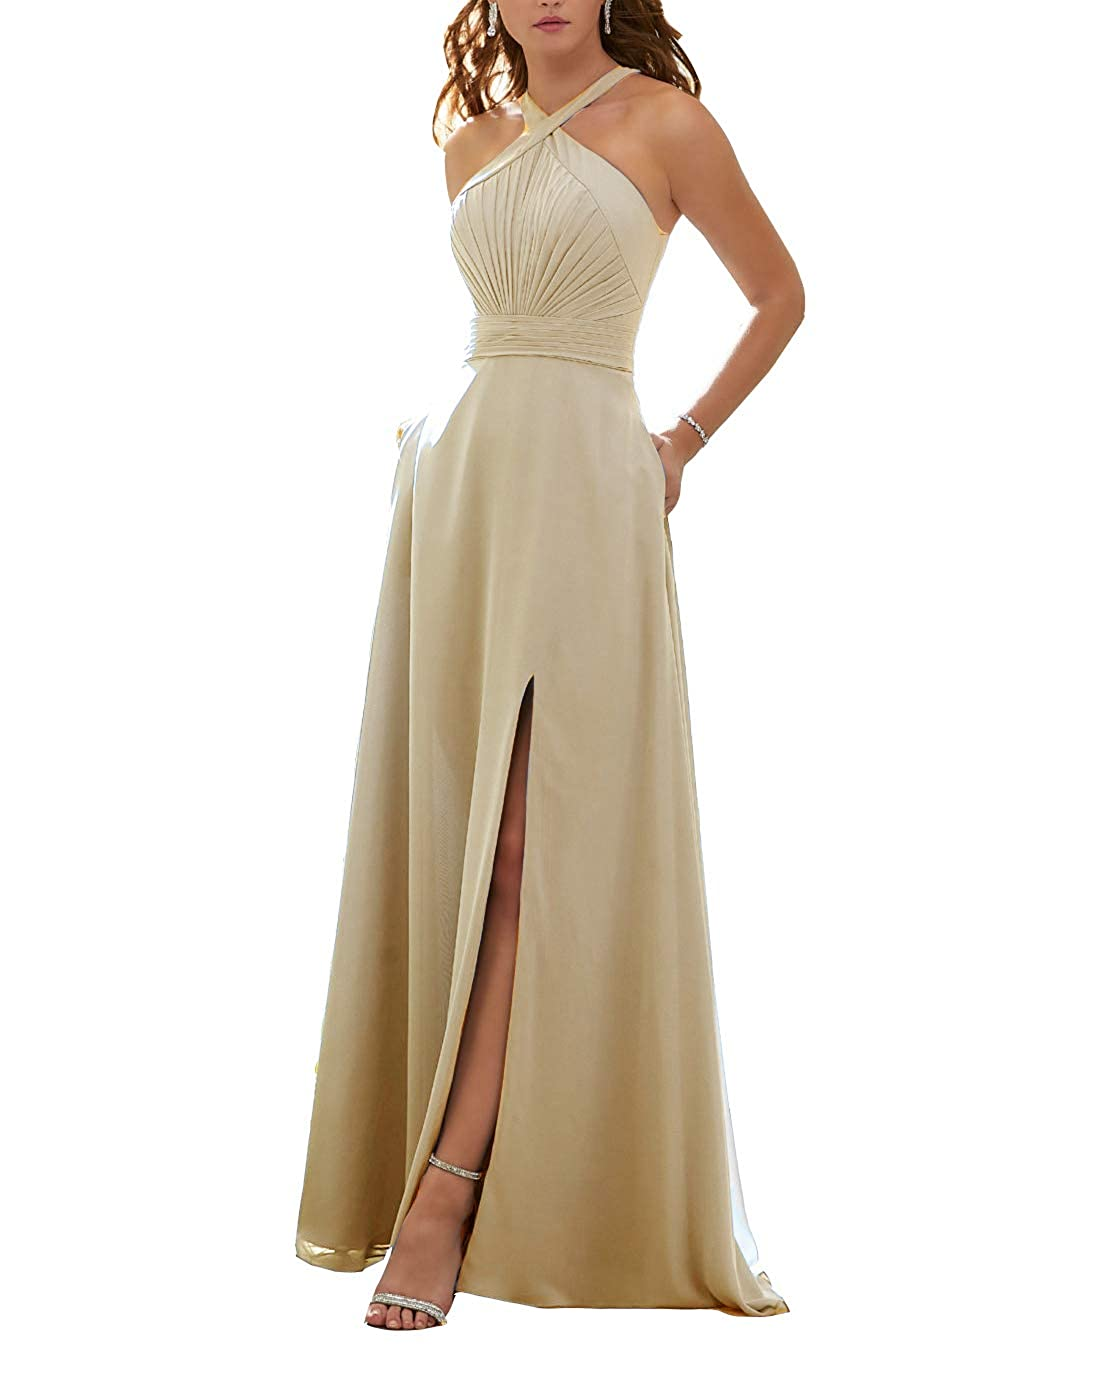 Champagne Stylefun Women's Halter Bridesmaid Dresses Slit 2019 Formal Prom Evening Party Gowns with Side Pockets KN010